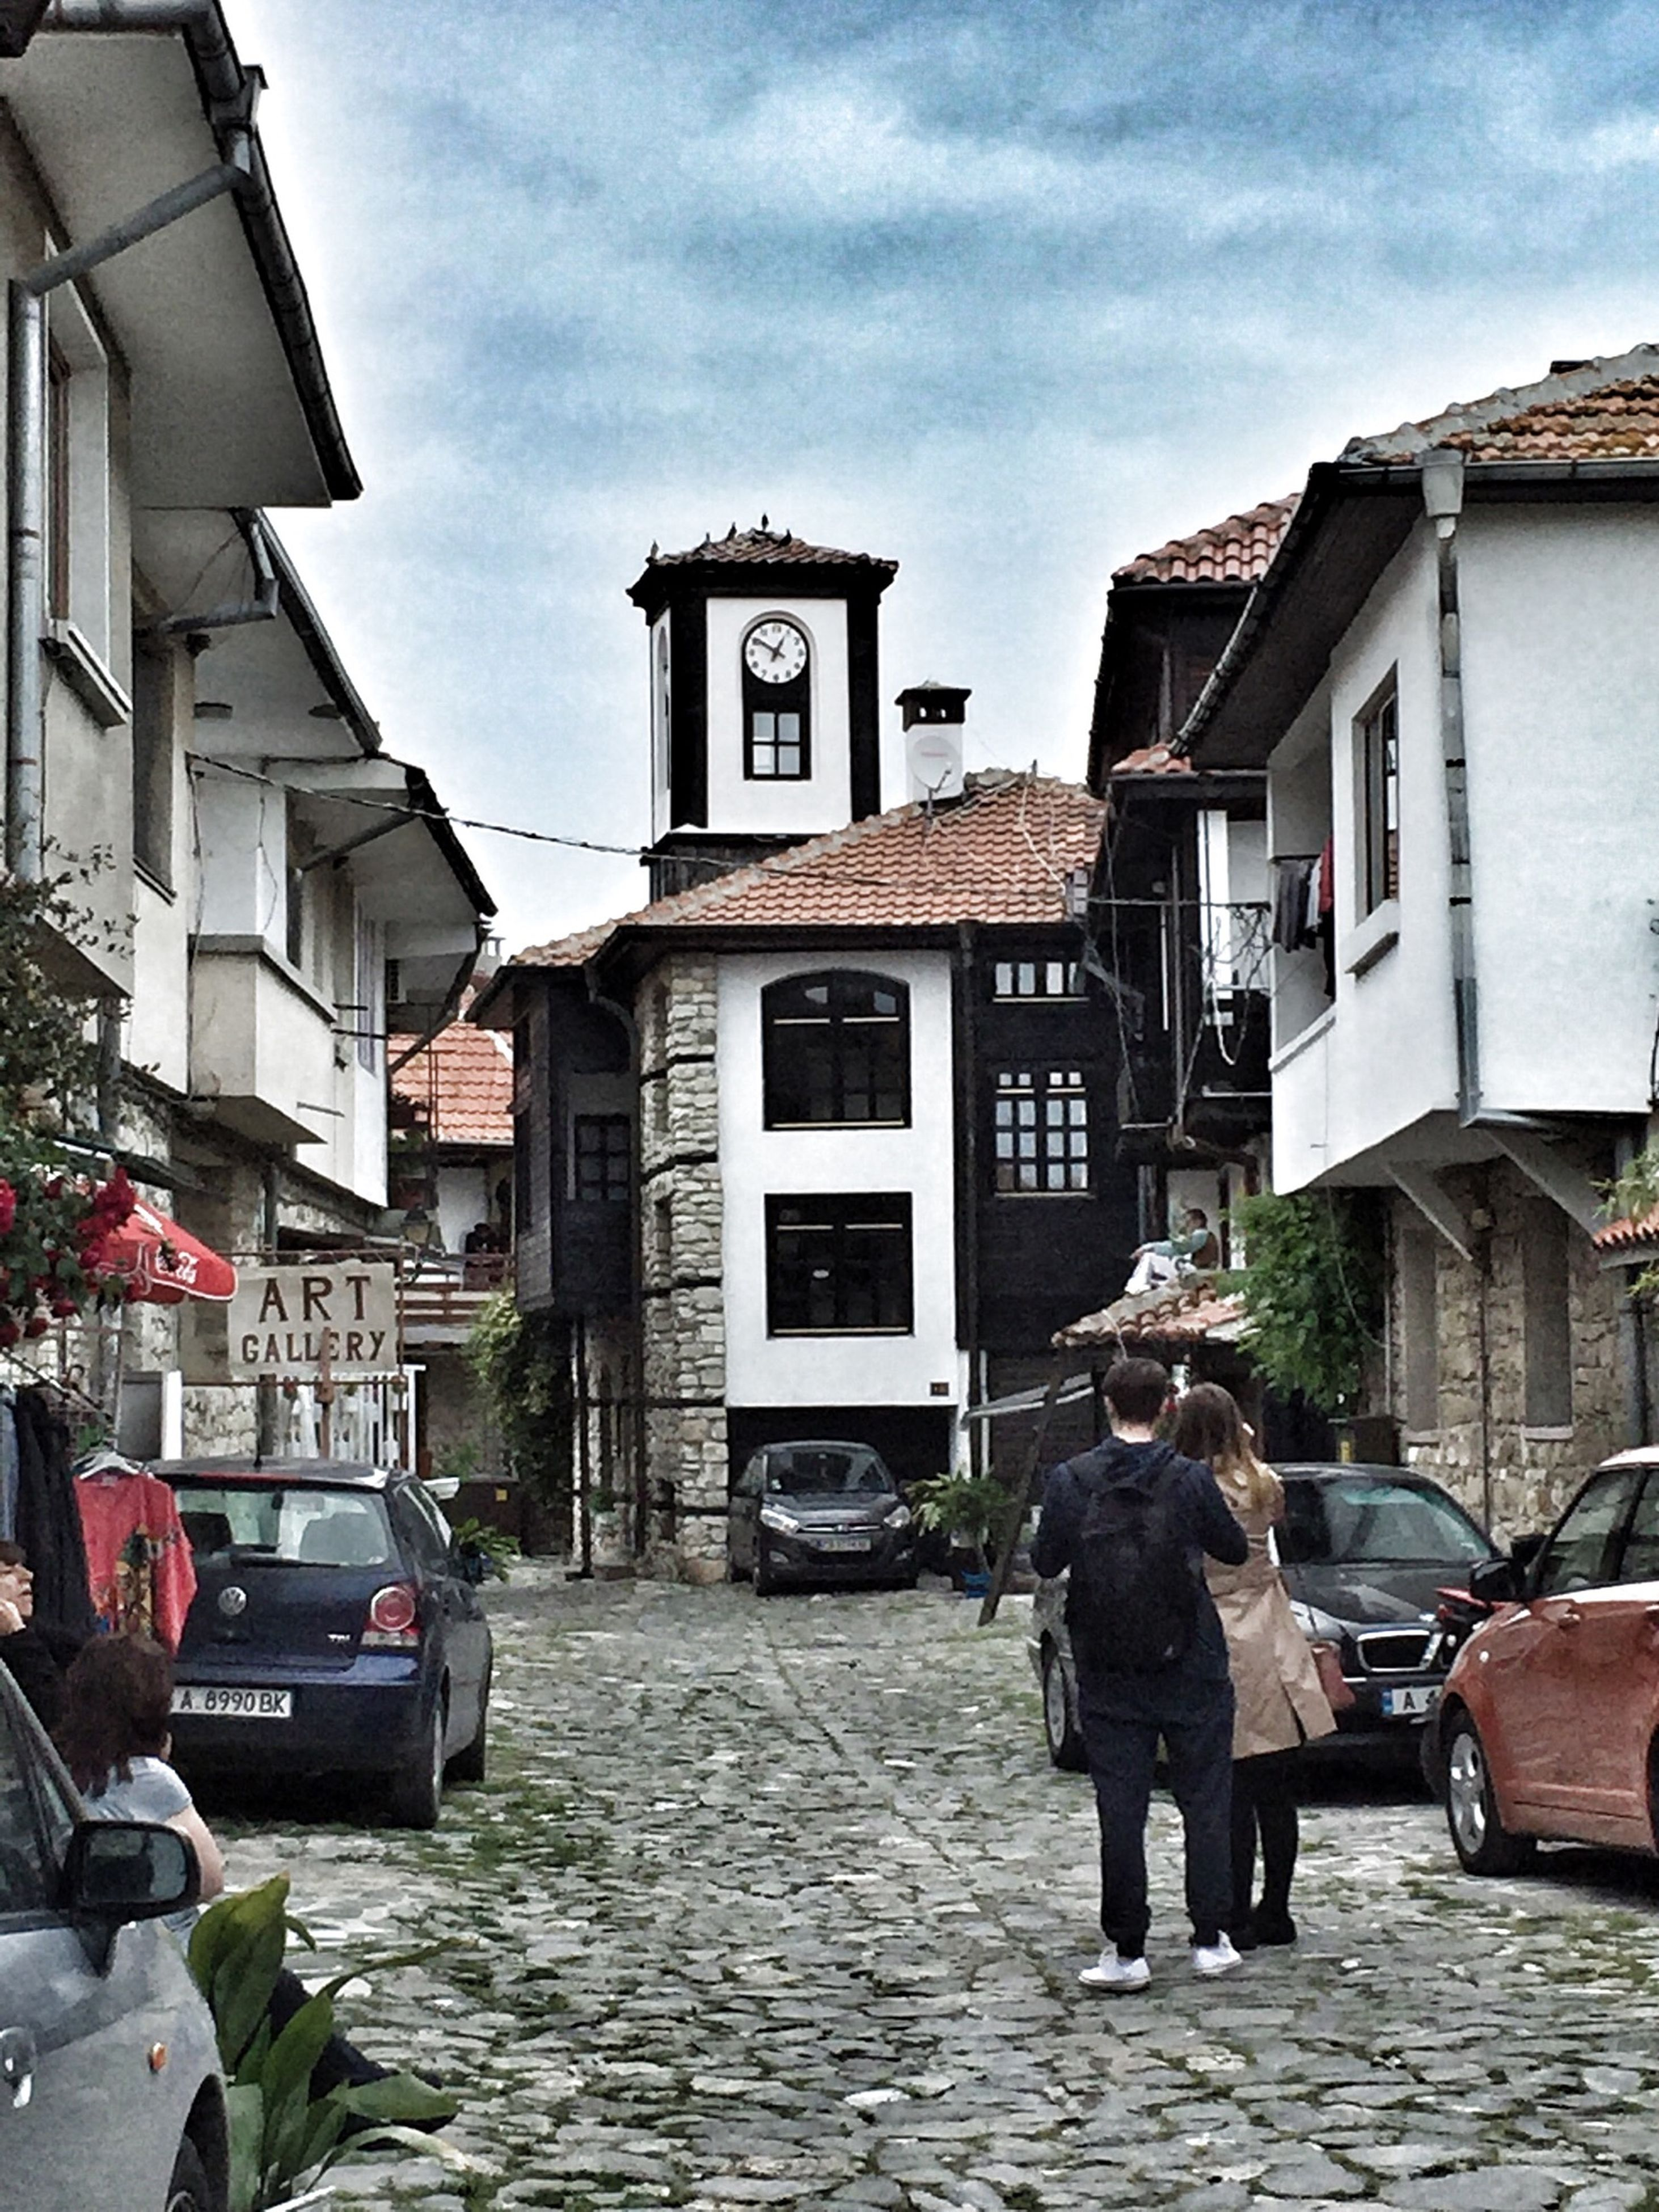 building exterior, architecture, built structure, men, lifestyles, street, sky, rear view, full length, walking, person, transportation, leisure activity, cobblestone, casual clothing, the way forward, mode of transport